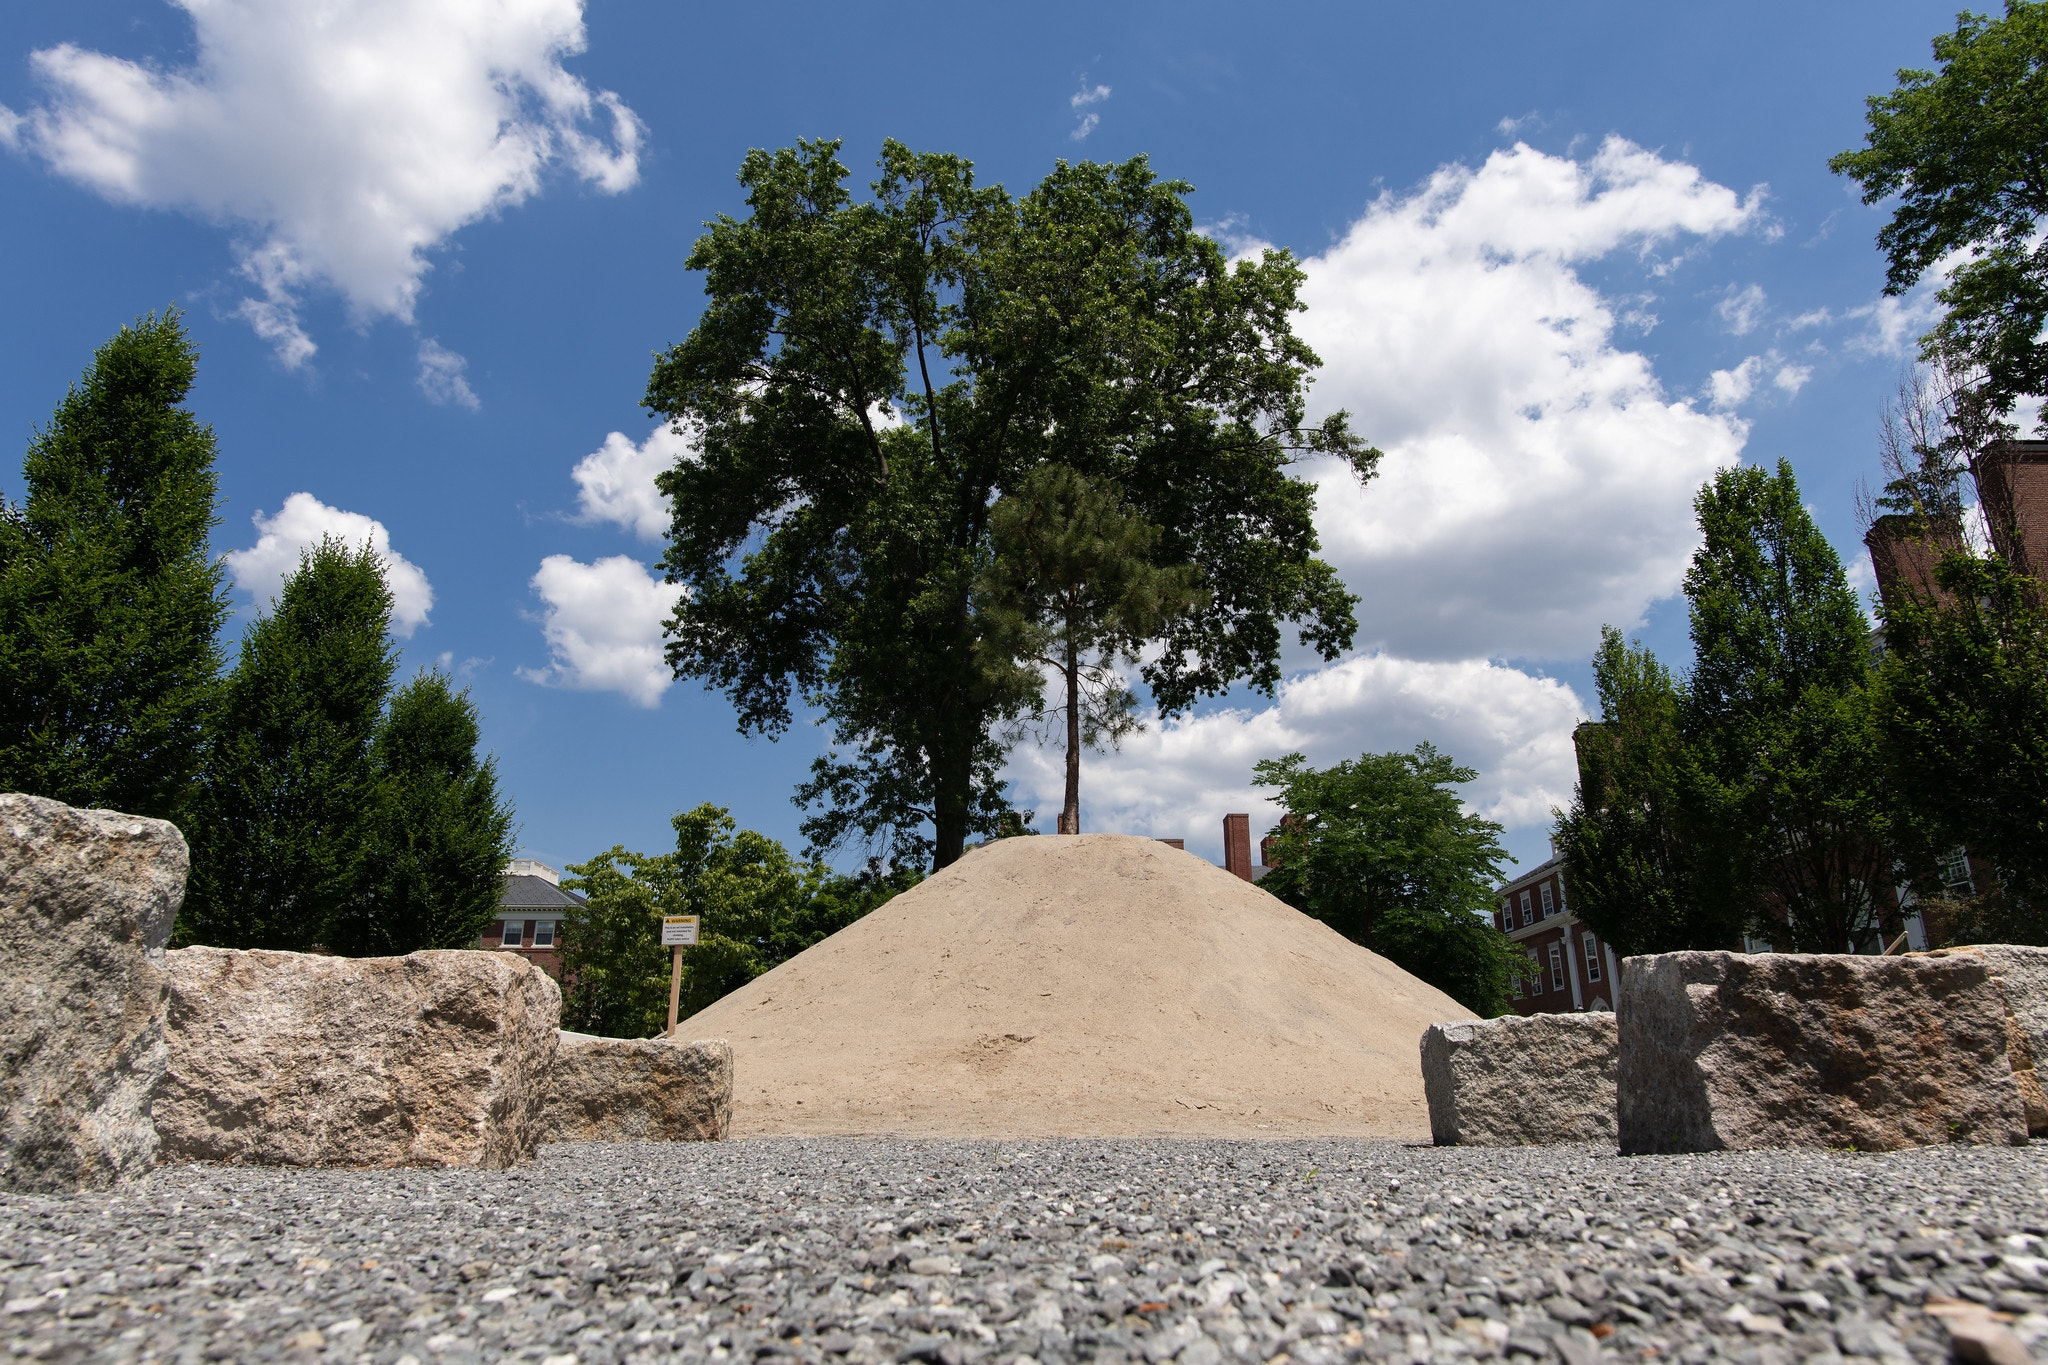 A mound of sand is planted with rows of granite benches